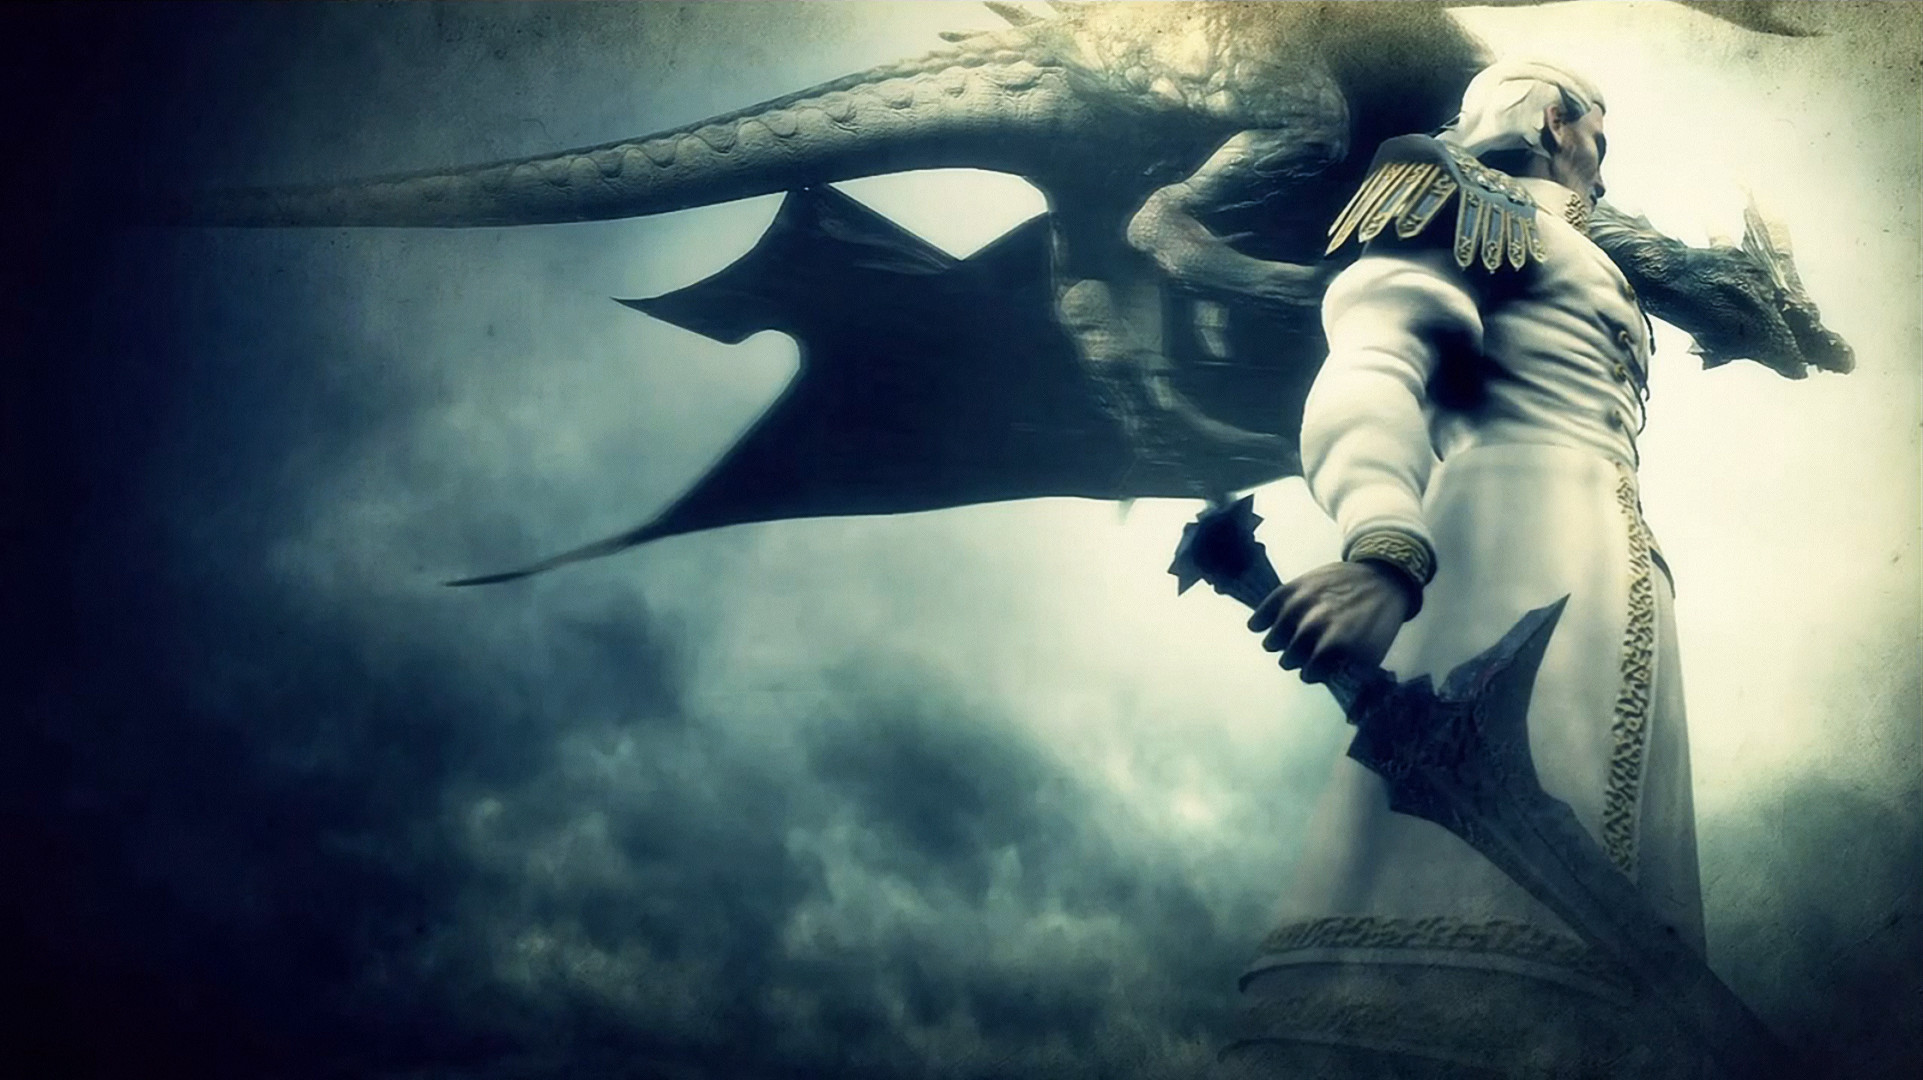 Res: 1923x1080, Demon's Souls Video Game · HD Wallpaper | Background Image ID:165676